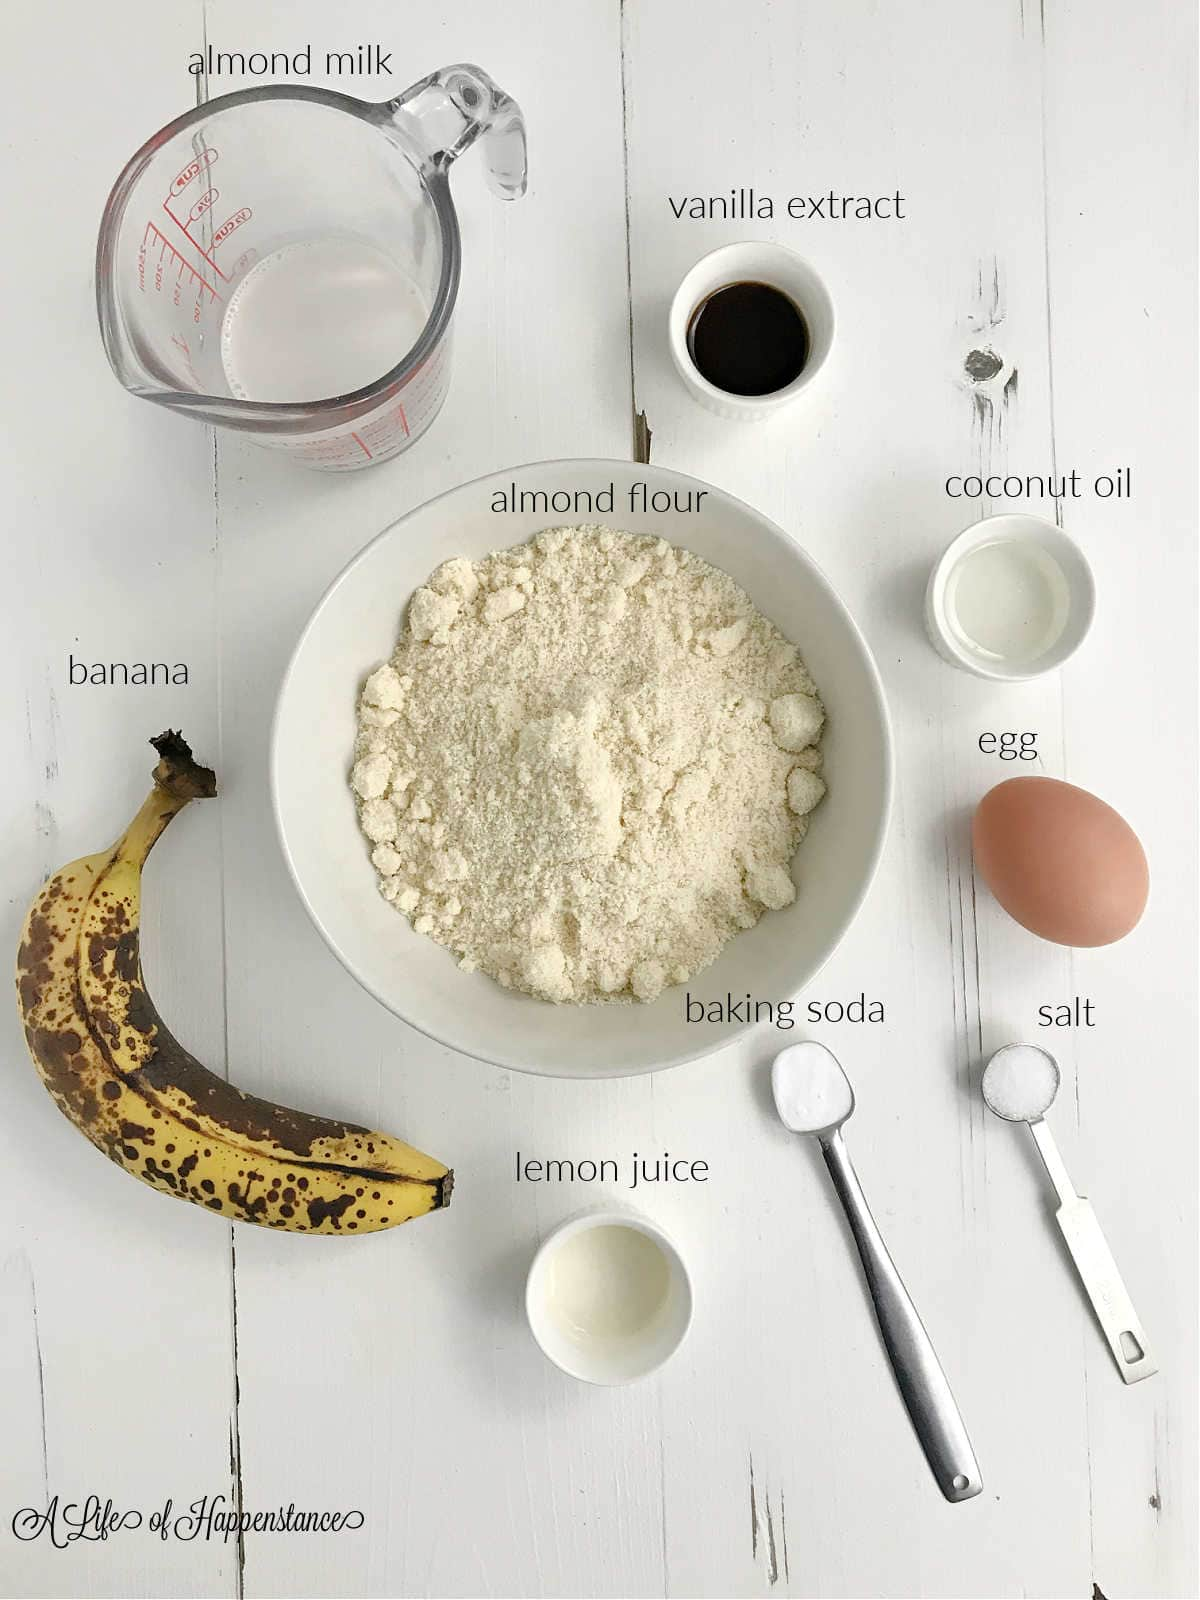 Ingredients for the smash cake; almond milk, vanilla extract, coconut oil, almond flour, banana, egg, lemon juice, baking soda, salt.